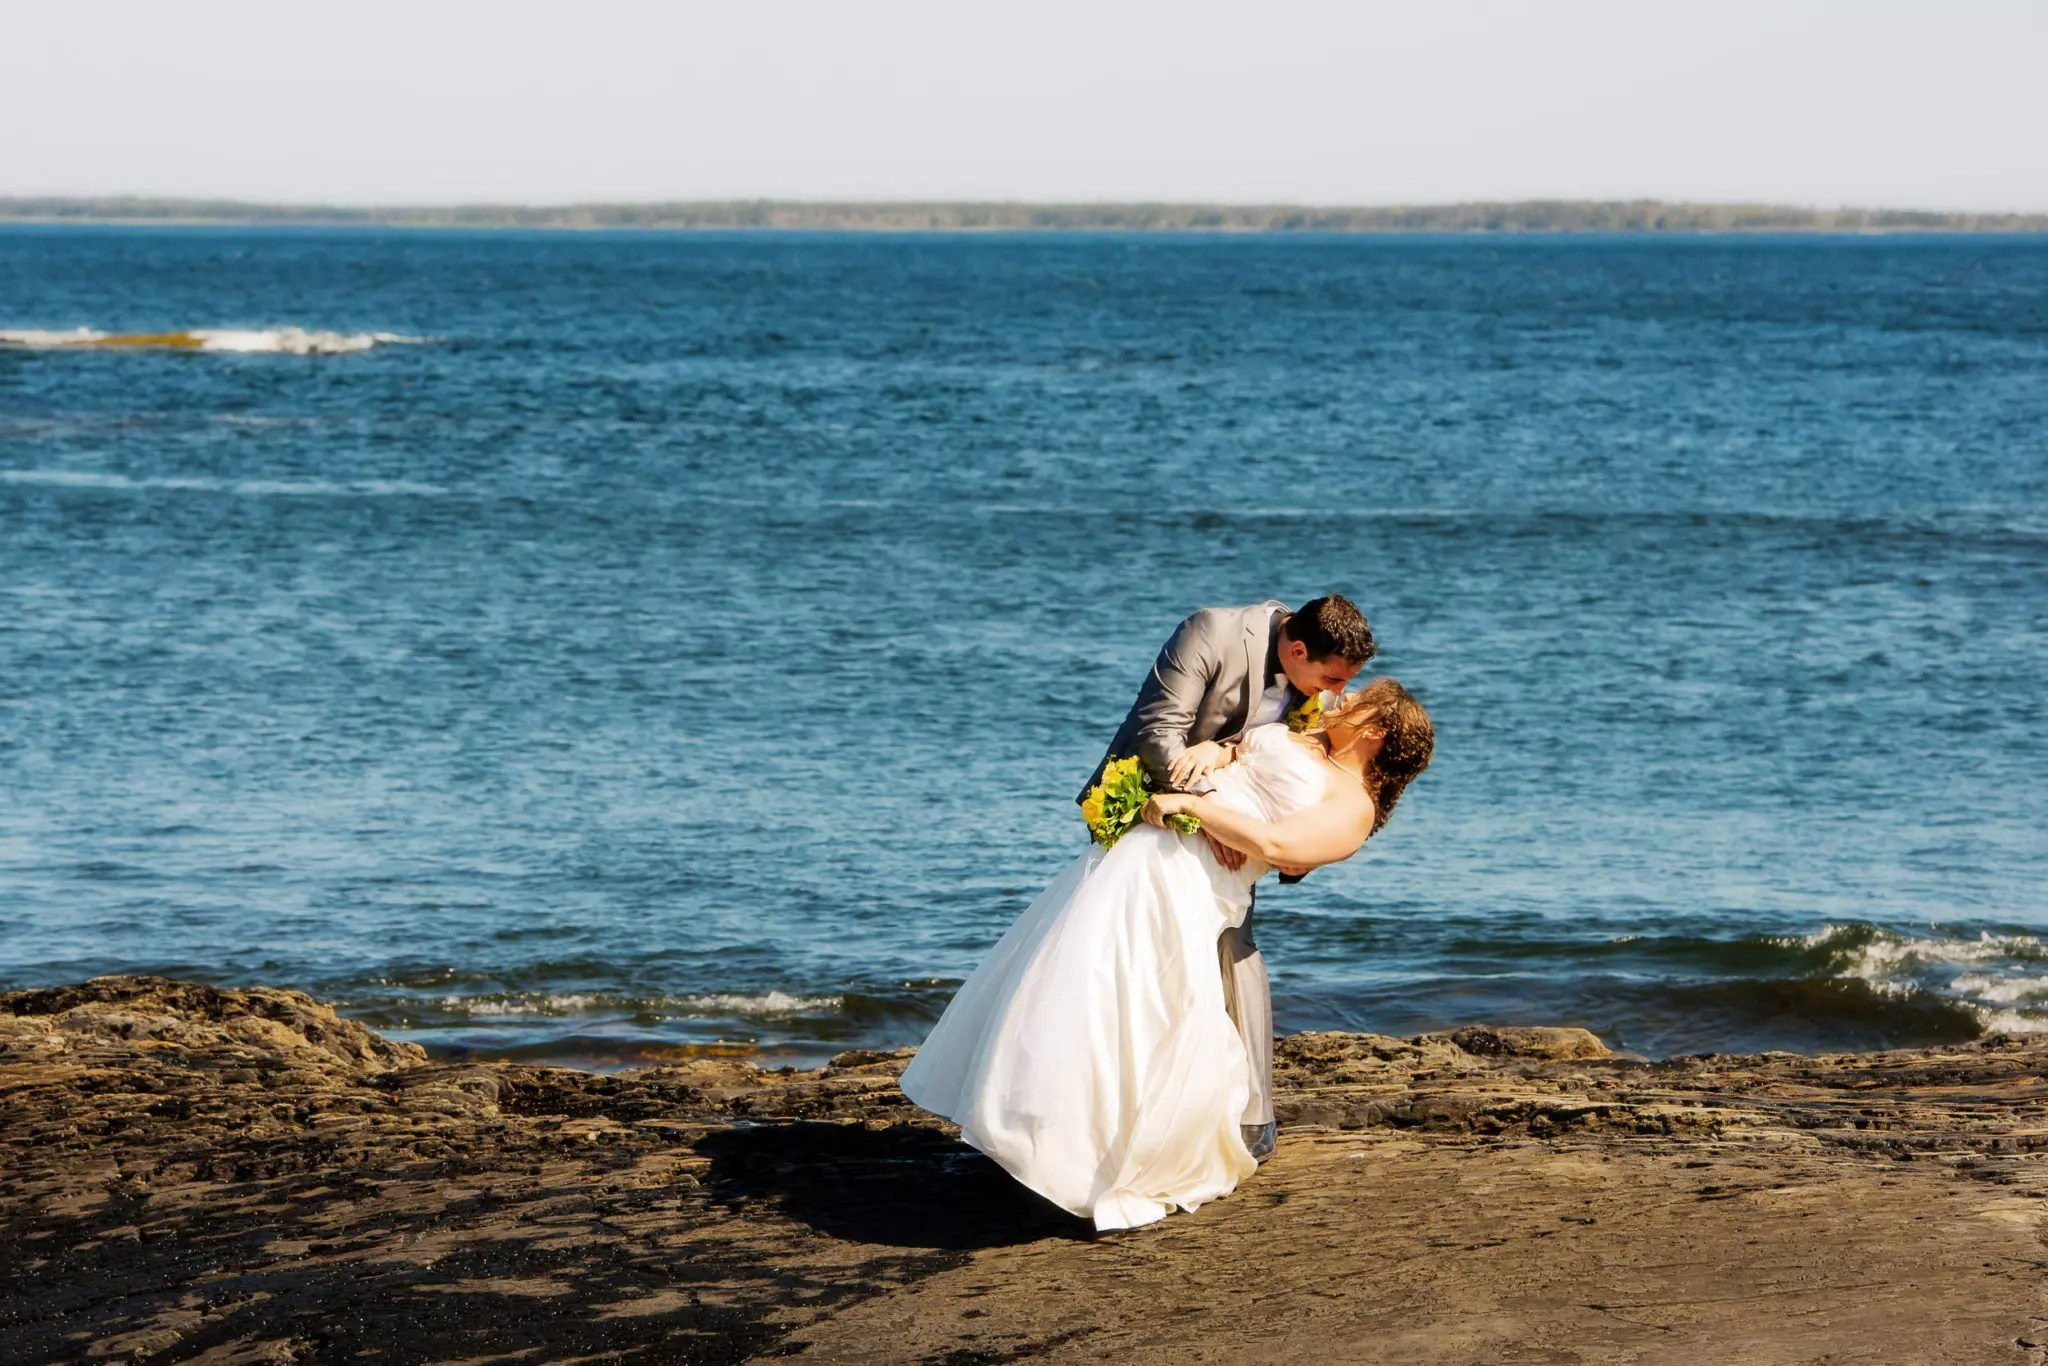 wedding photography by MITphotography.ca